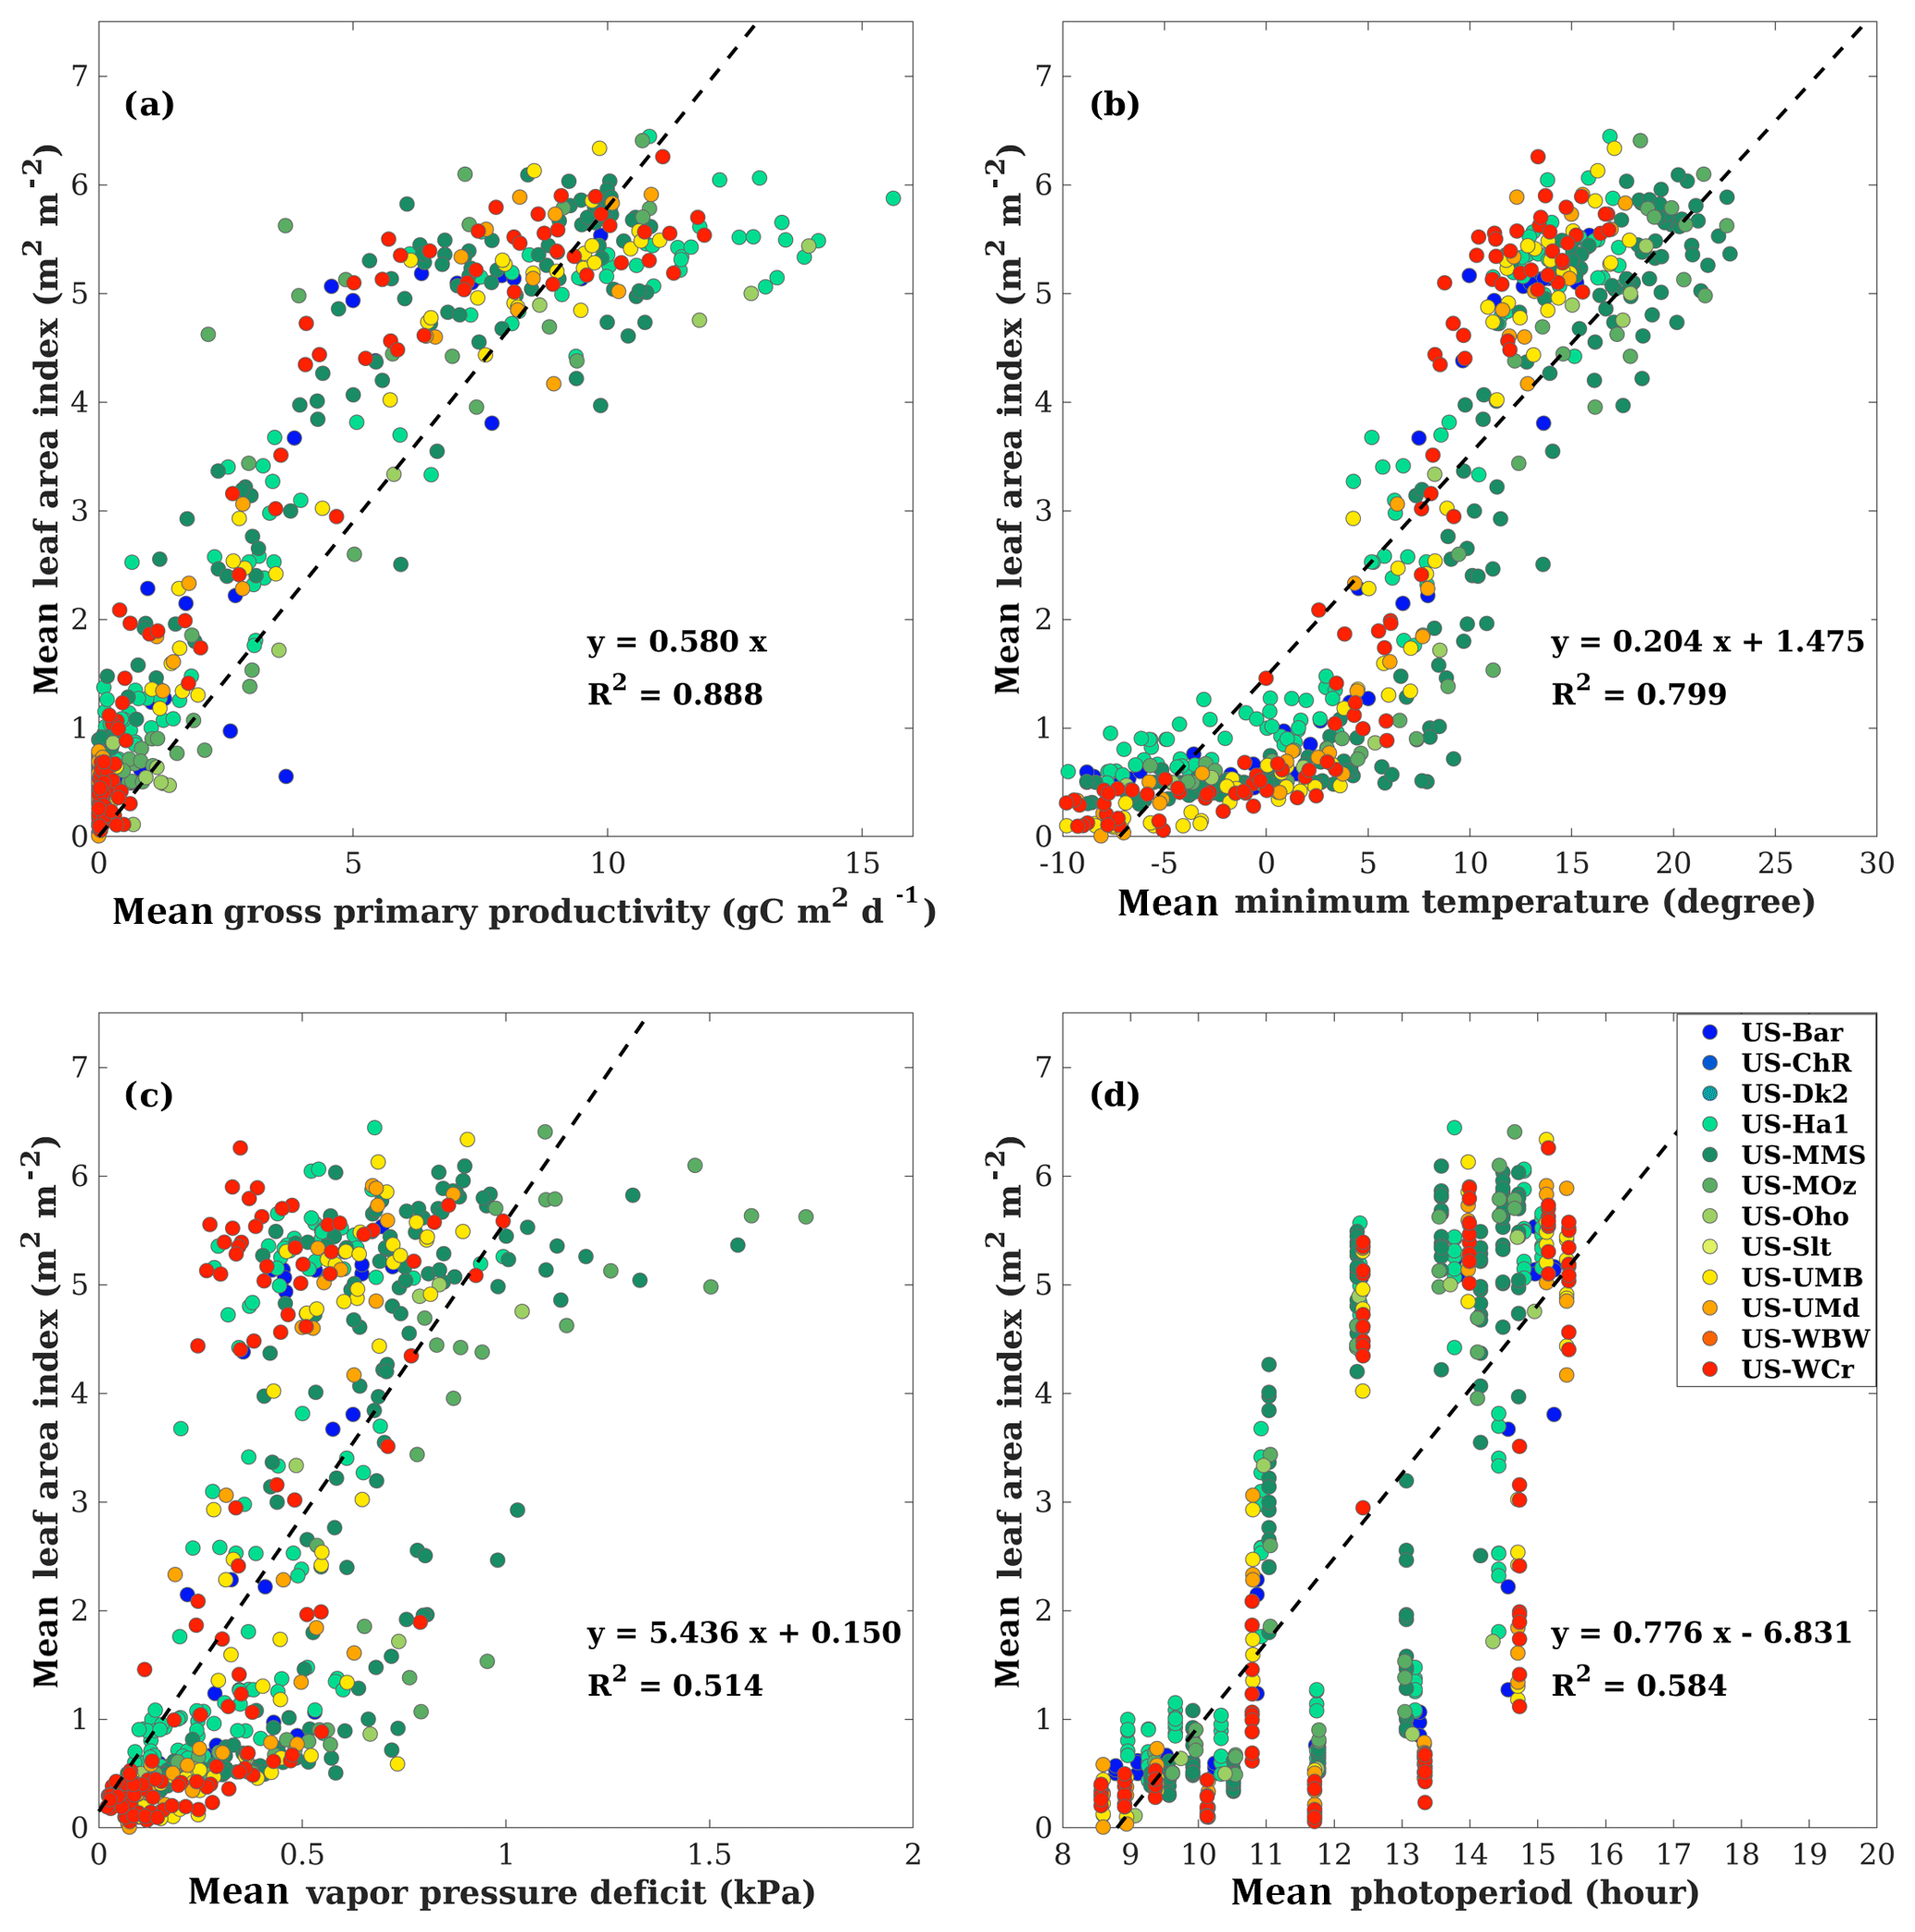 BG - A simple time-stepping scheme to simulate leaf area index